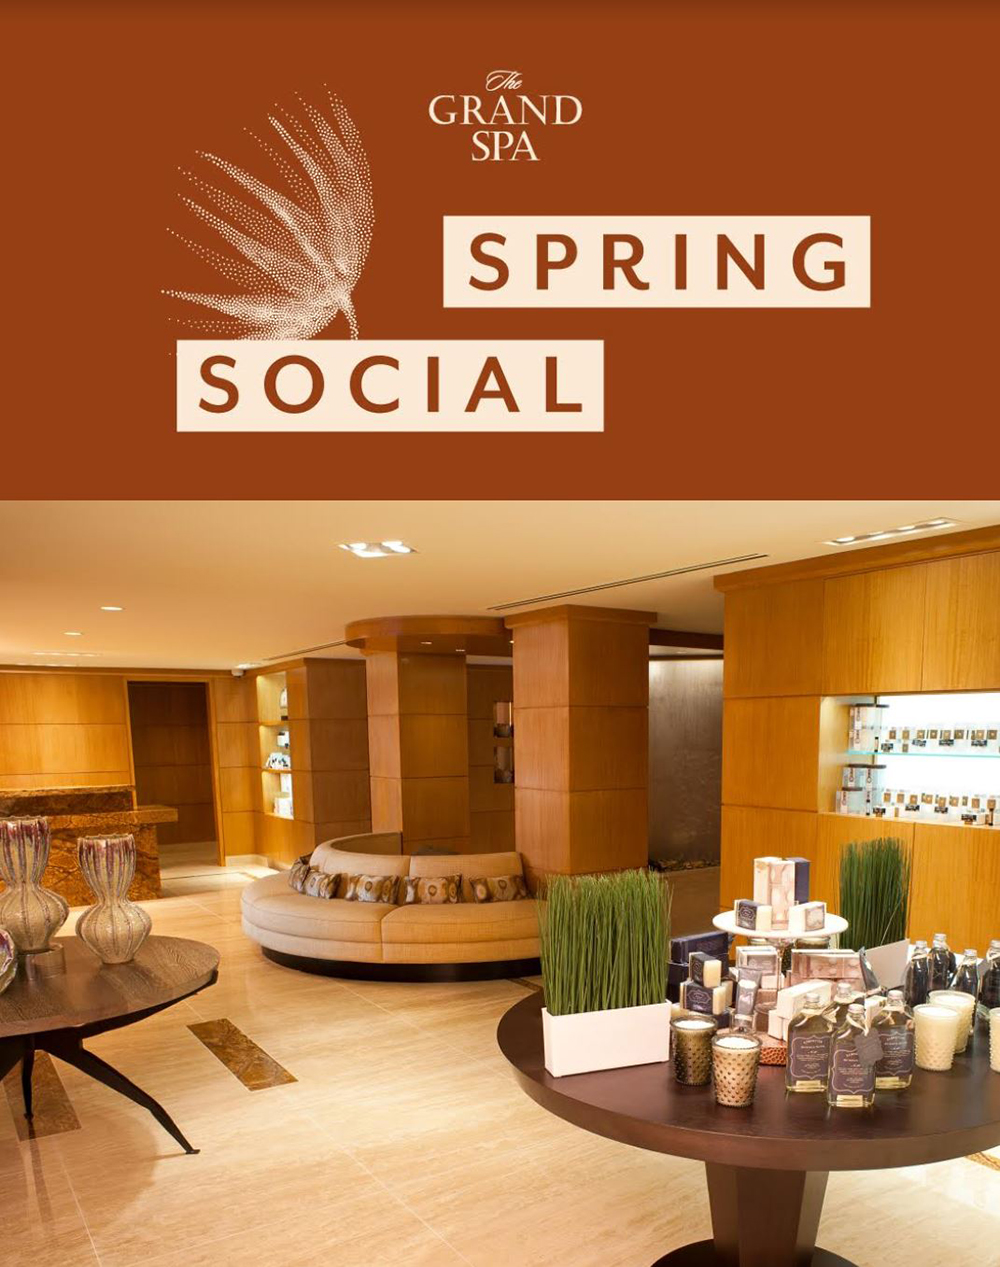 Recently, The Spa Insider attended The Grand Spa Spring Social at The Grand America Hotel in Salt Lake City.